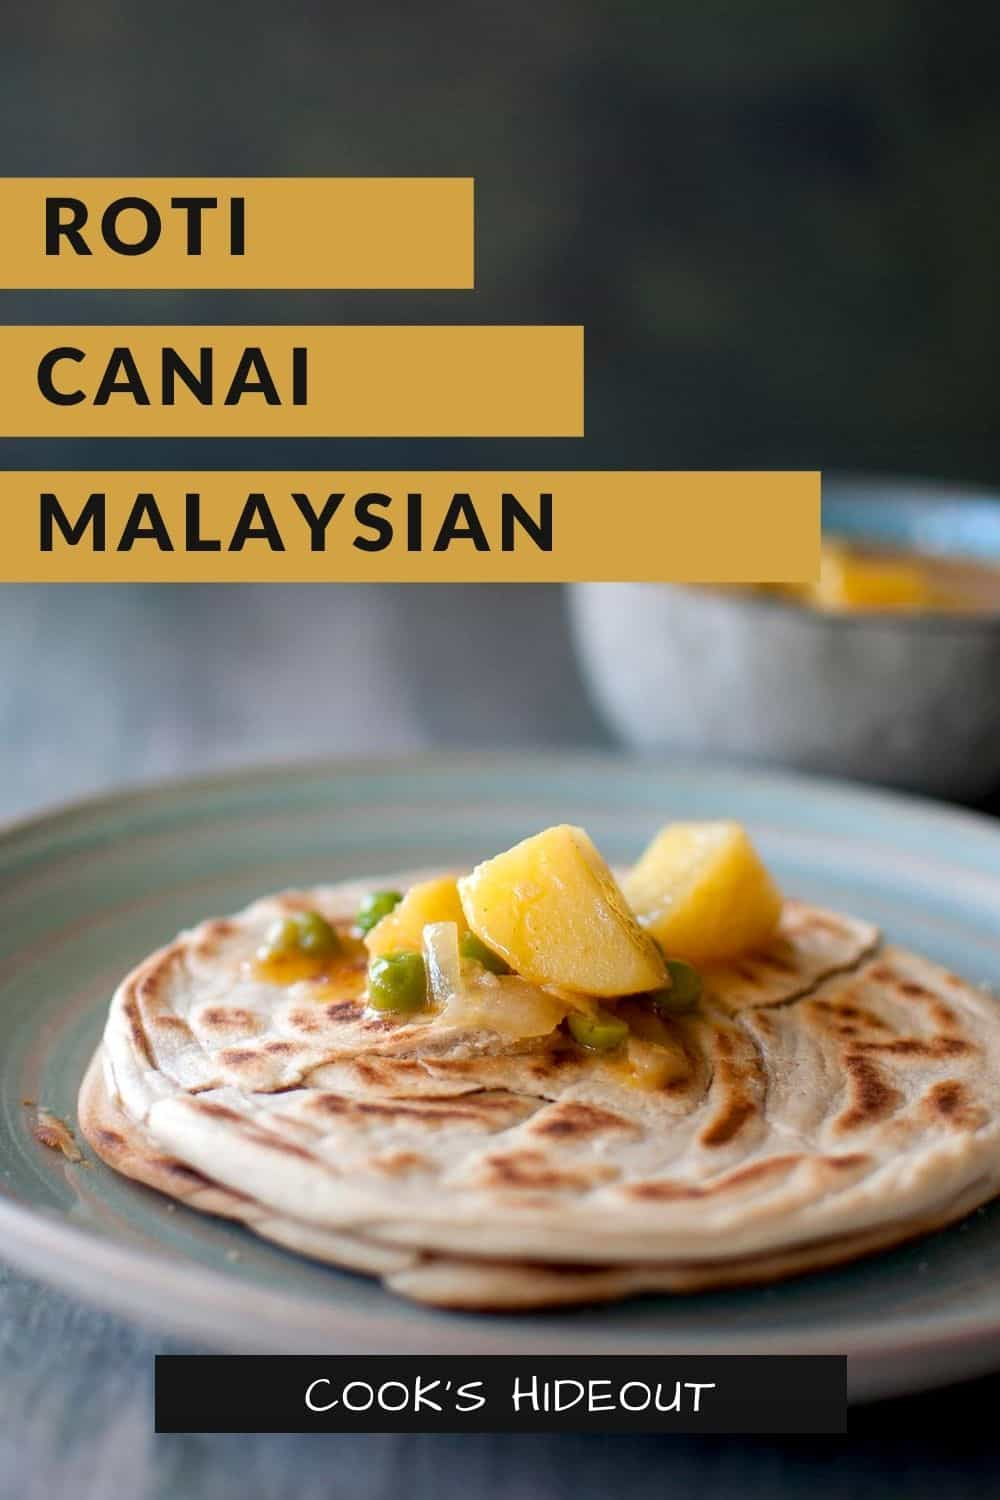 Blue plate with a plate of roti canai topped with potato curry sauce